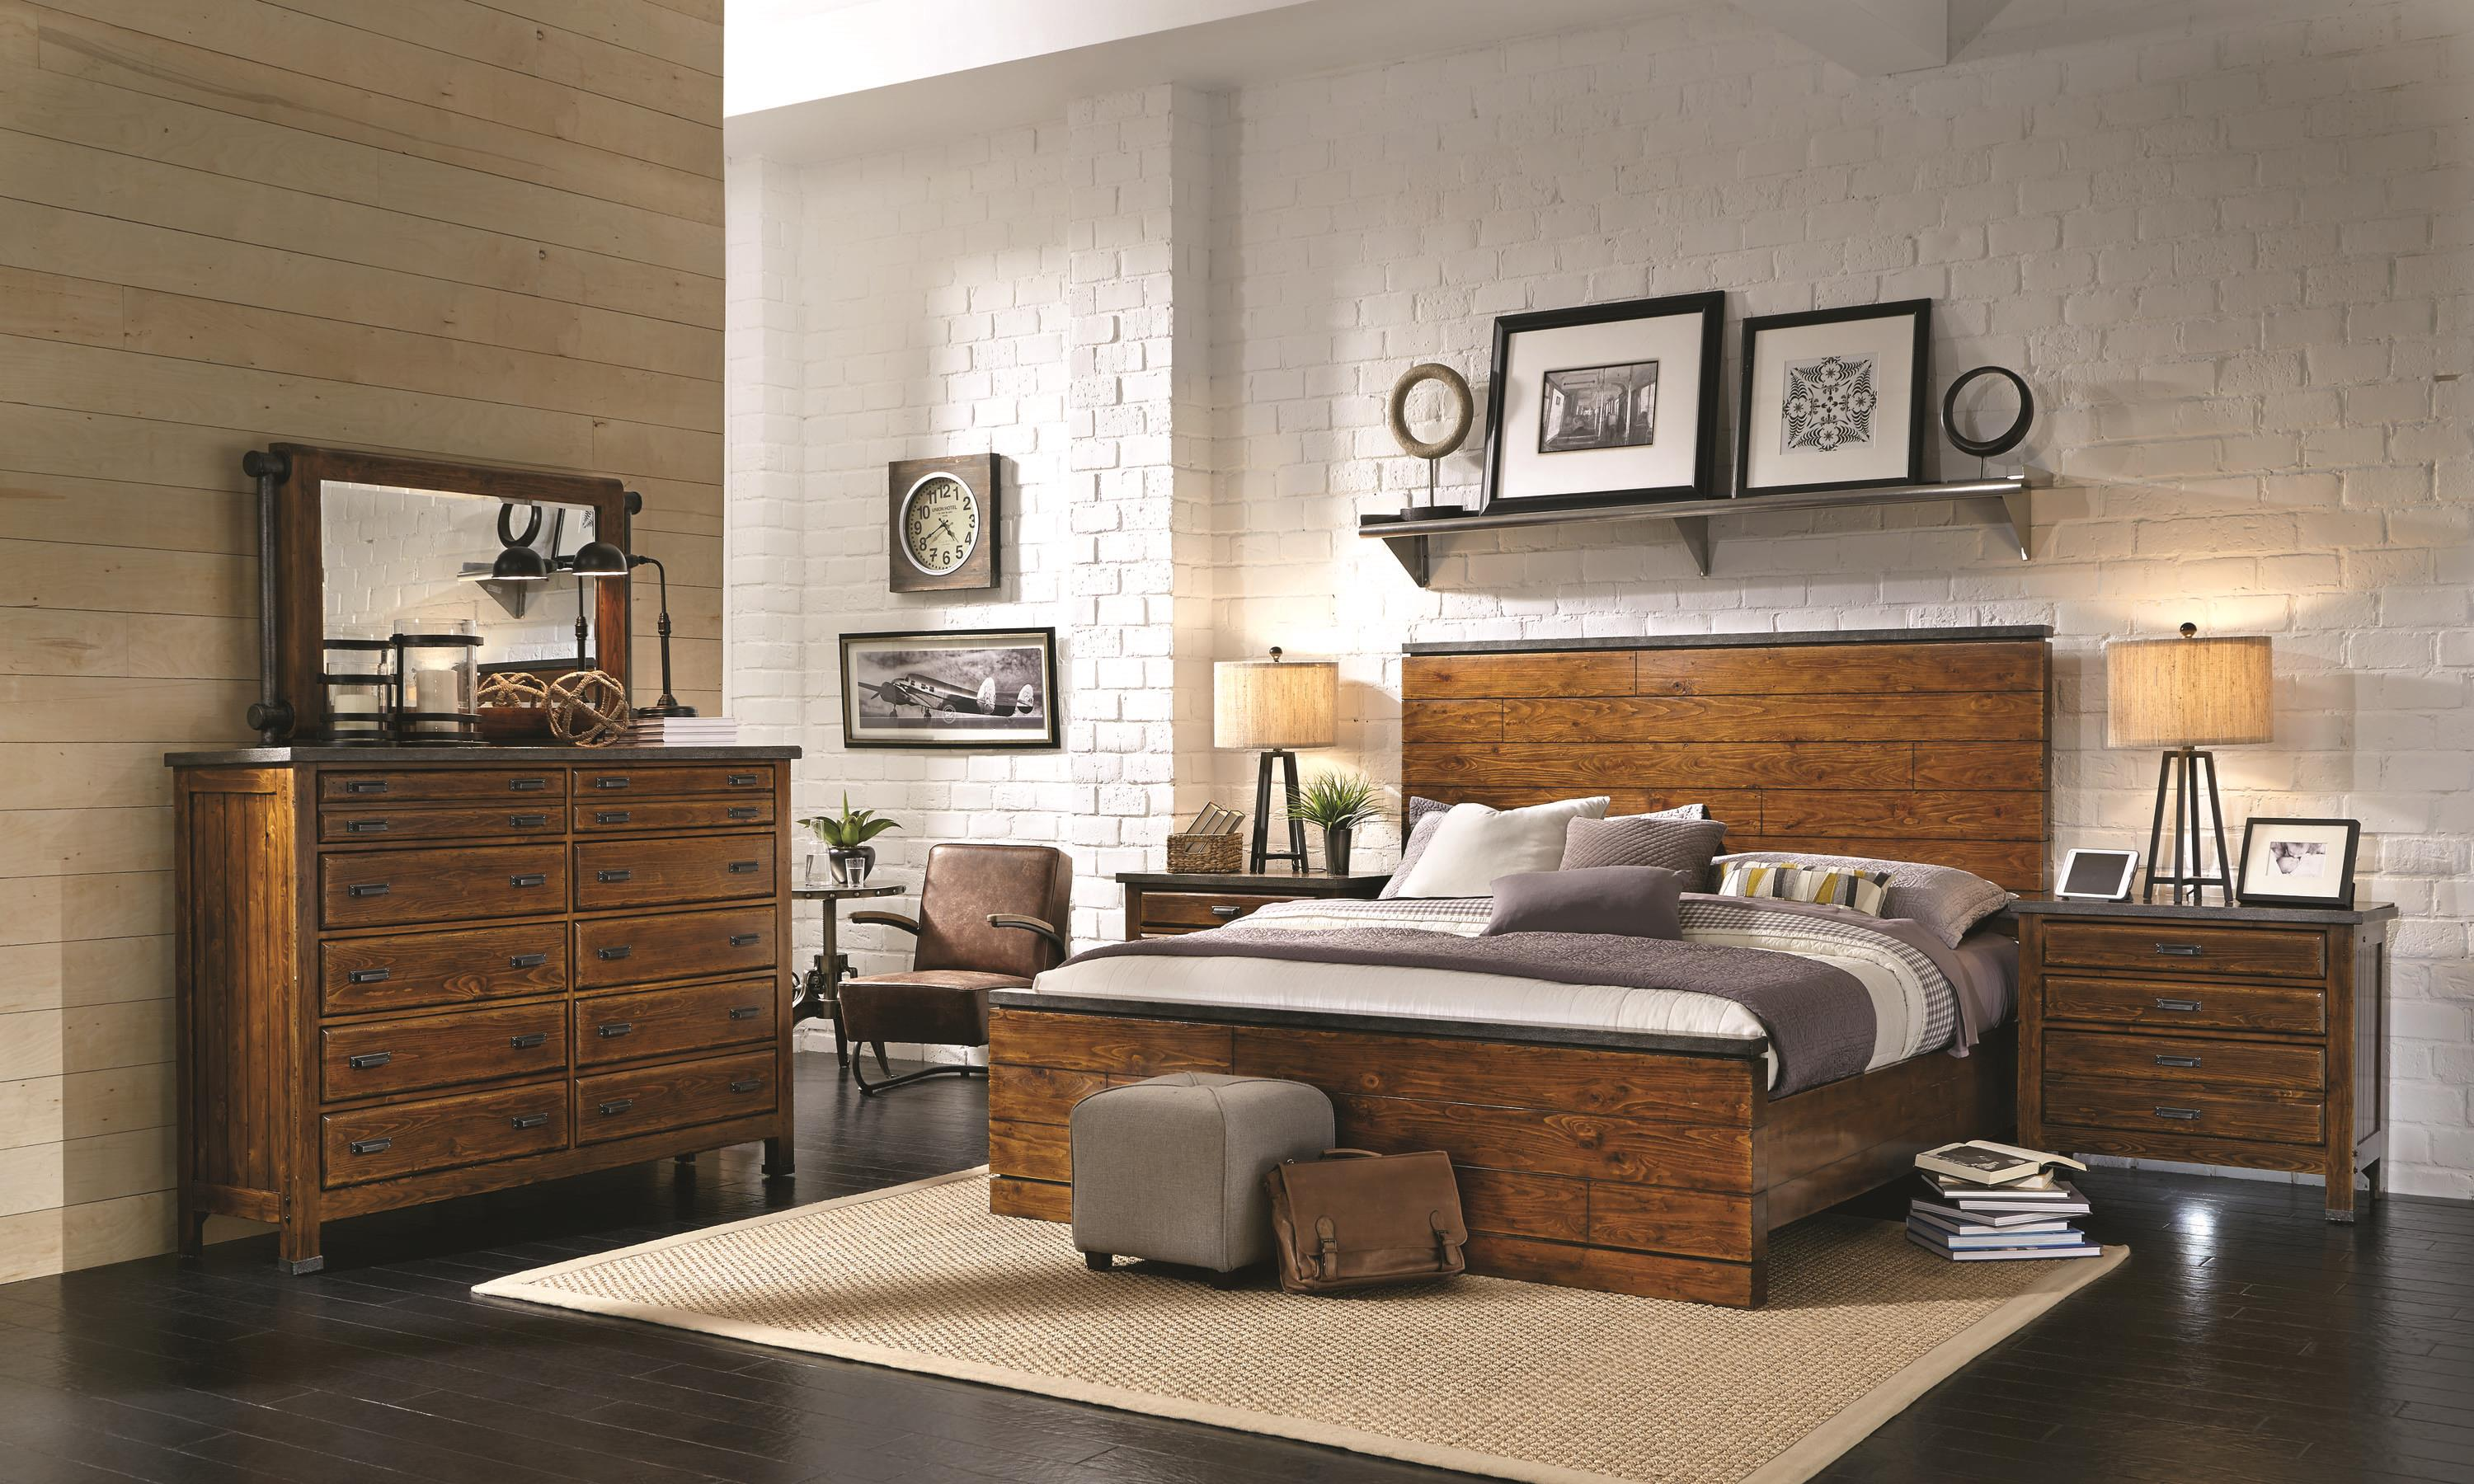 Aspenhome Rockland King Bedroom Group - Item Number: I58 K Bedroom Group 2